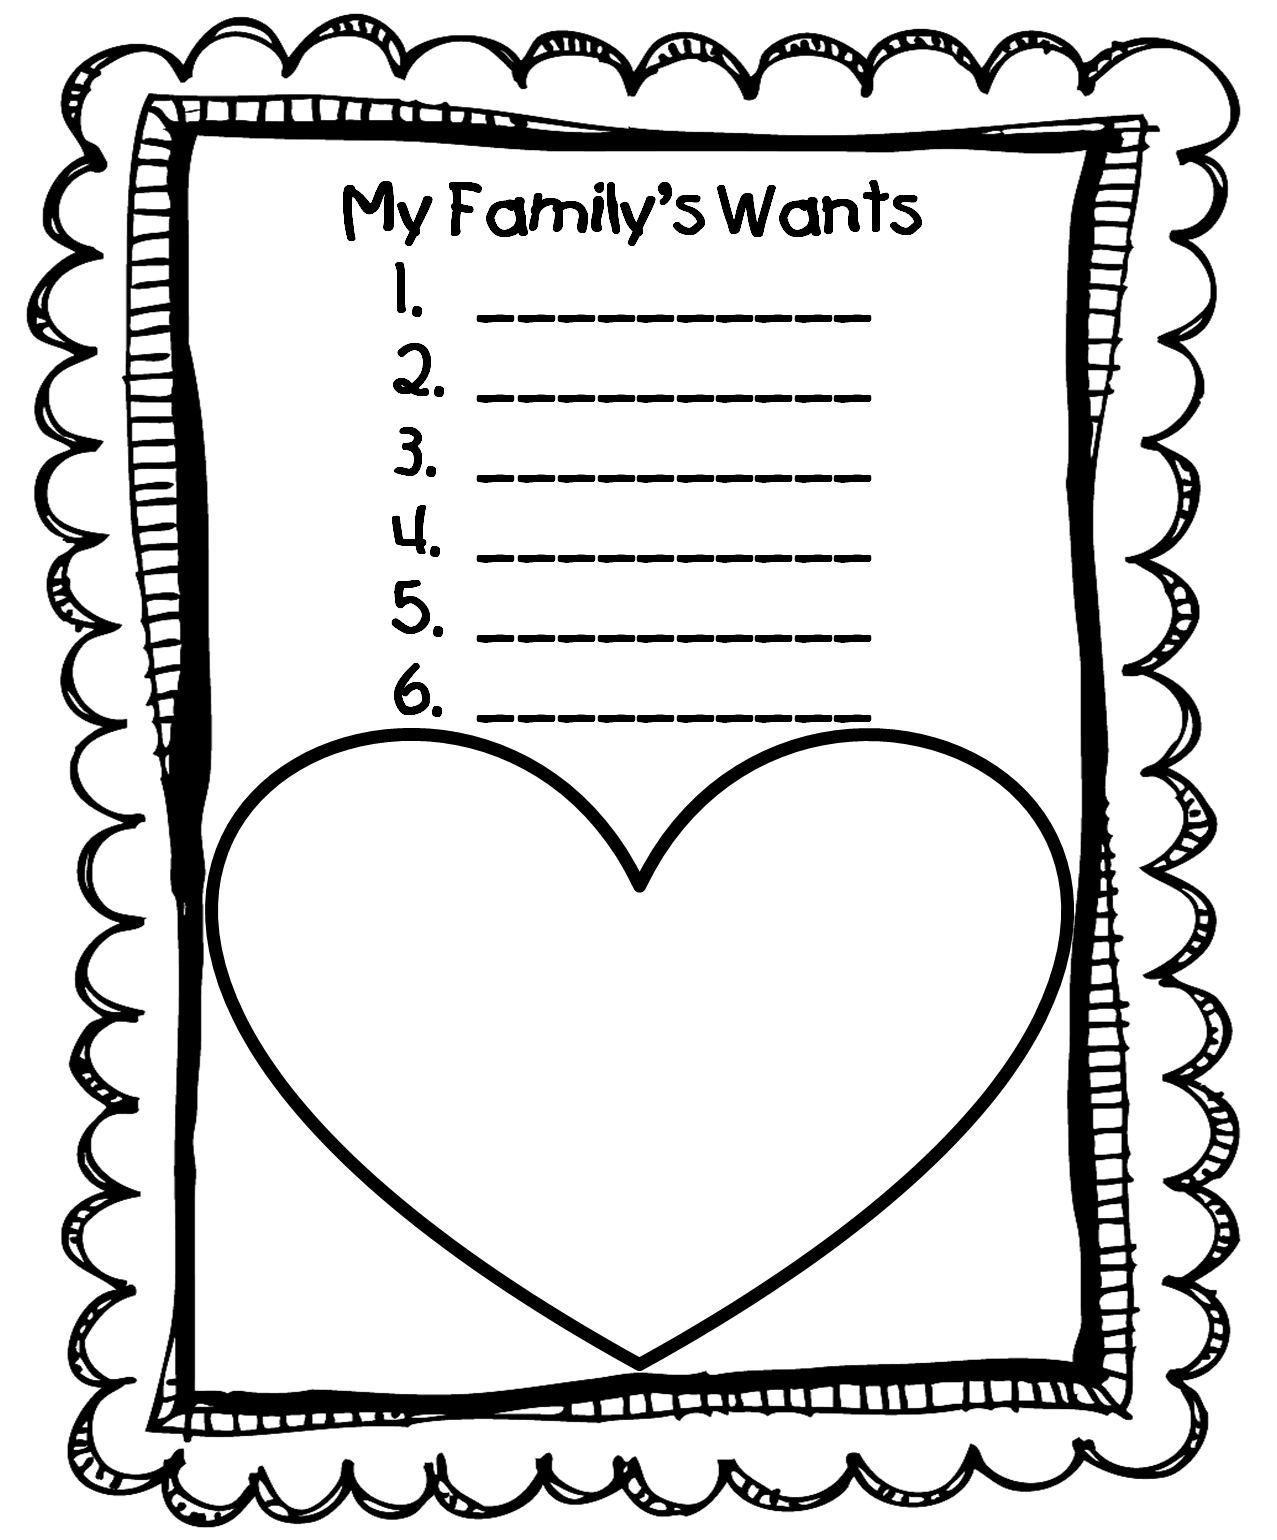 worksheet Wants And Needs Worksheets new 870 family needs worksheets worksheet preschool for unit your mini little click free on here